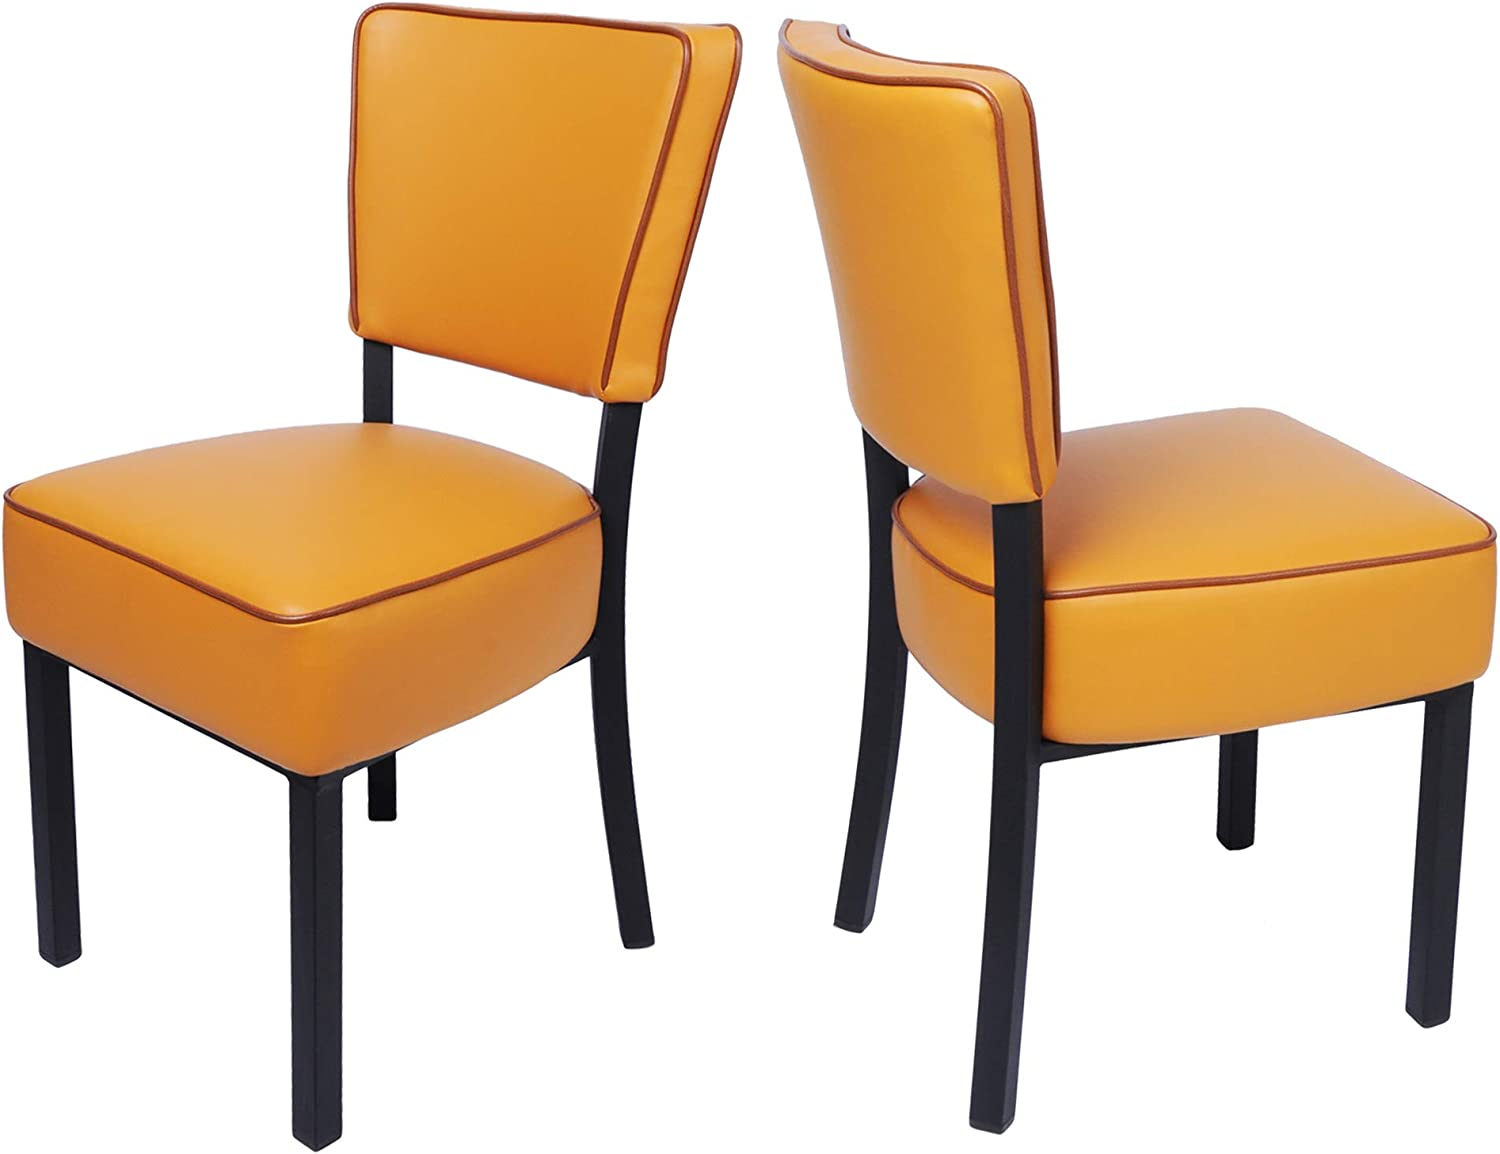 LUCKYERMORE Kitchen Dining Chairs Set of 2 Modern Classic Leather Side Chair for Dining Room Cafe Bedroom, Orange